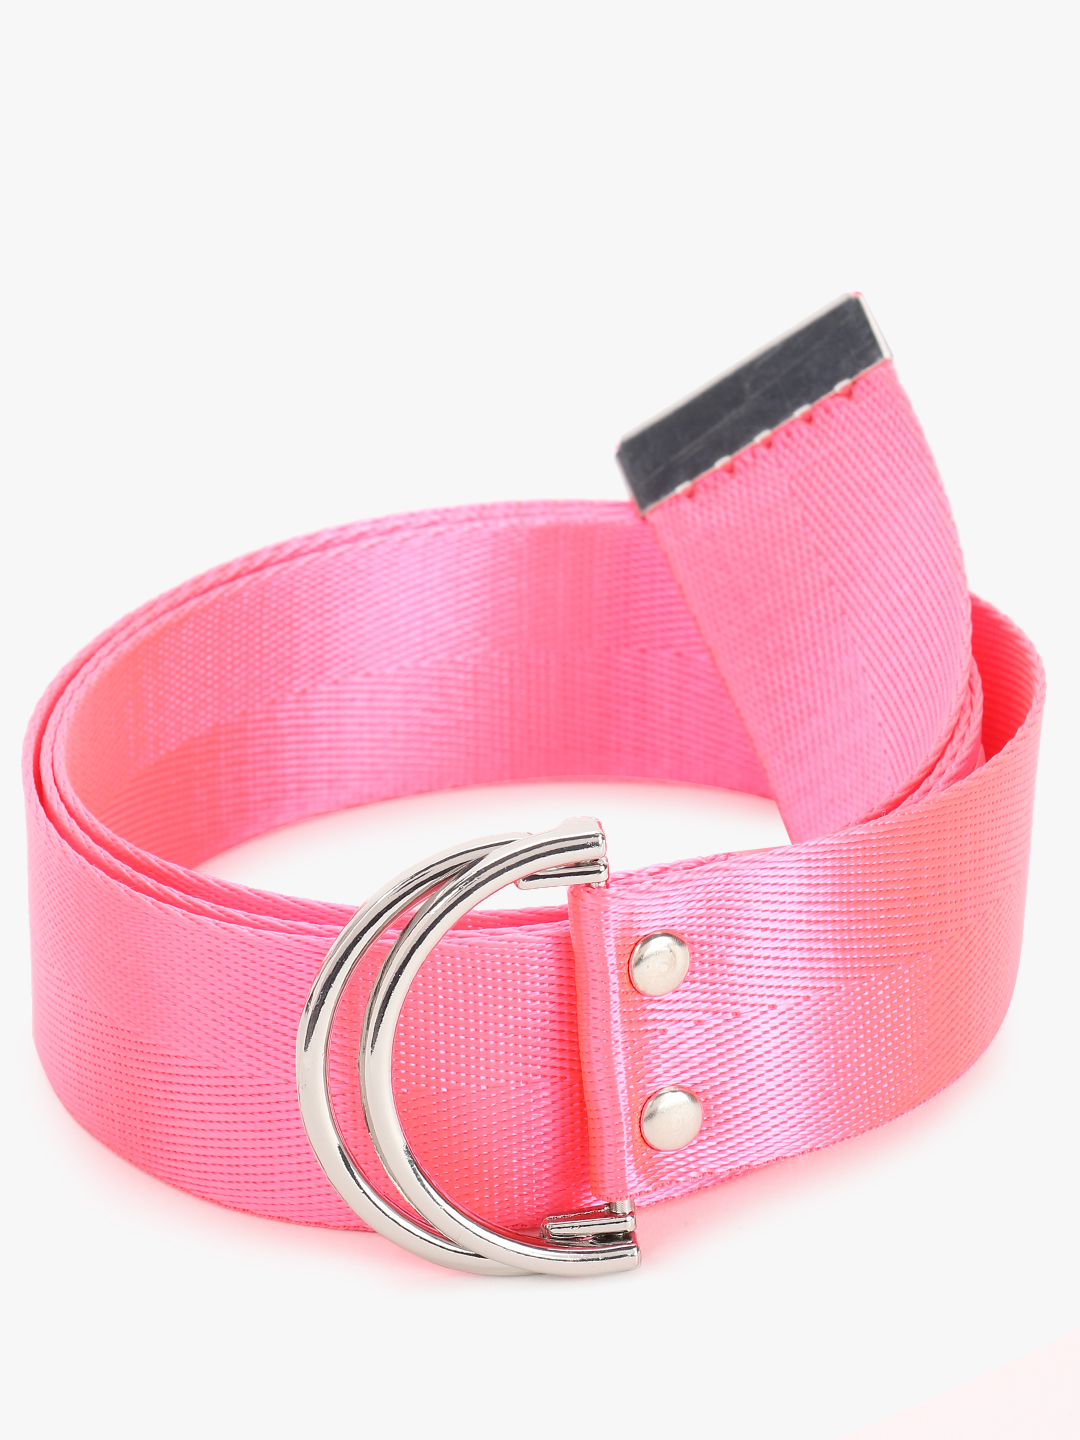 New Look Pink Webbed Belt 1